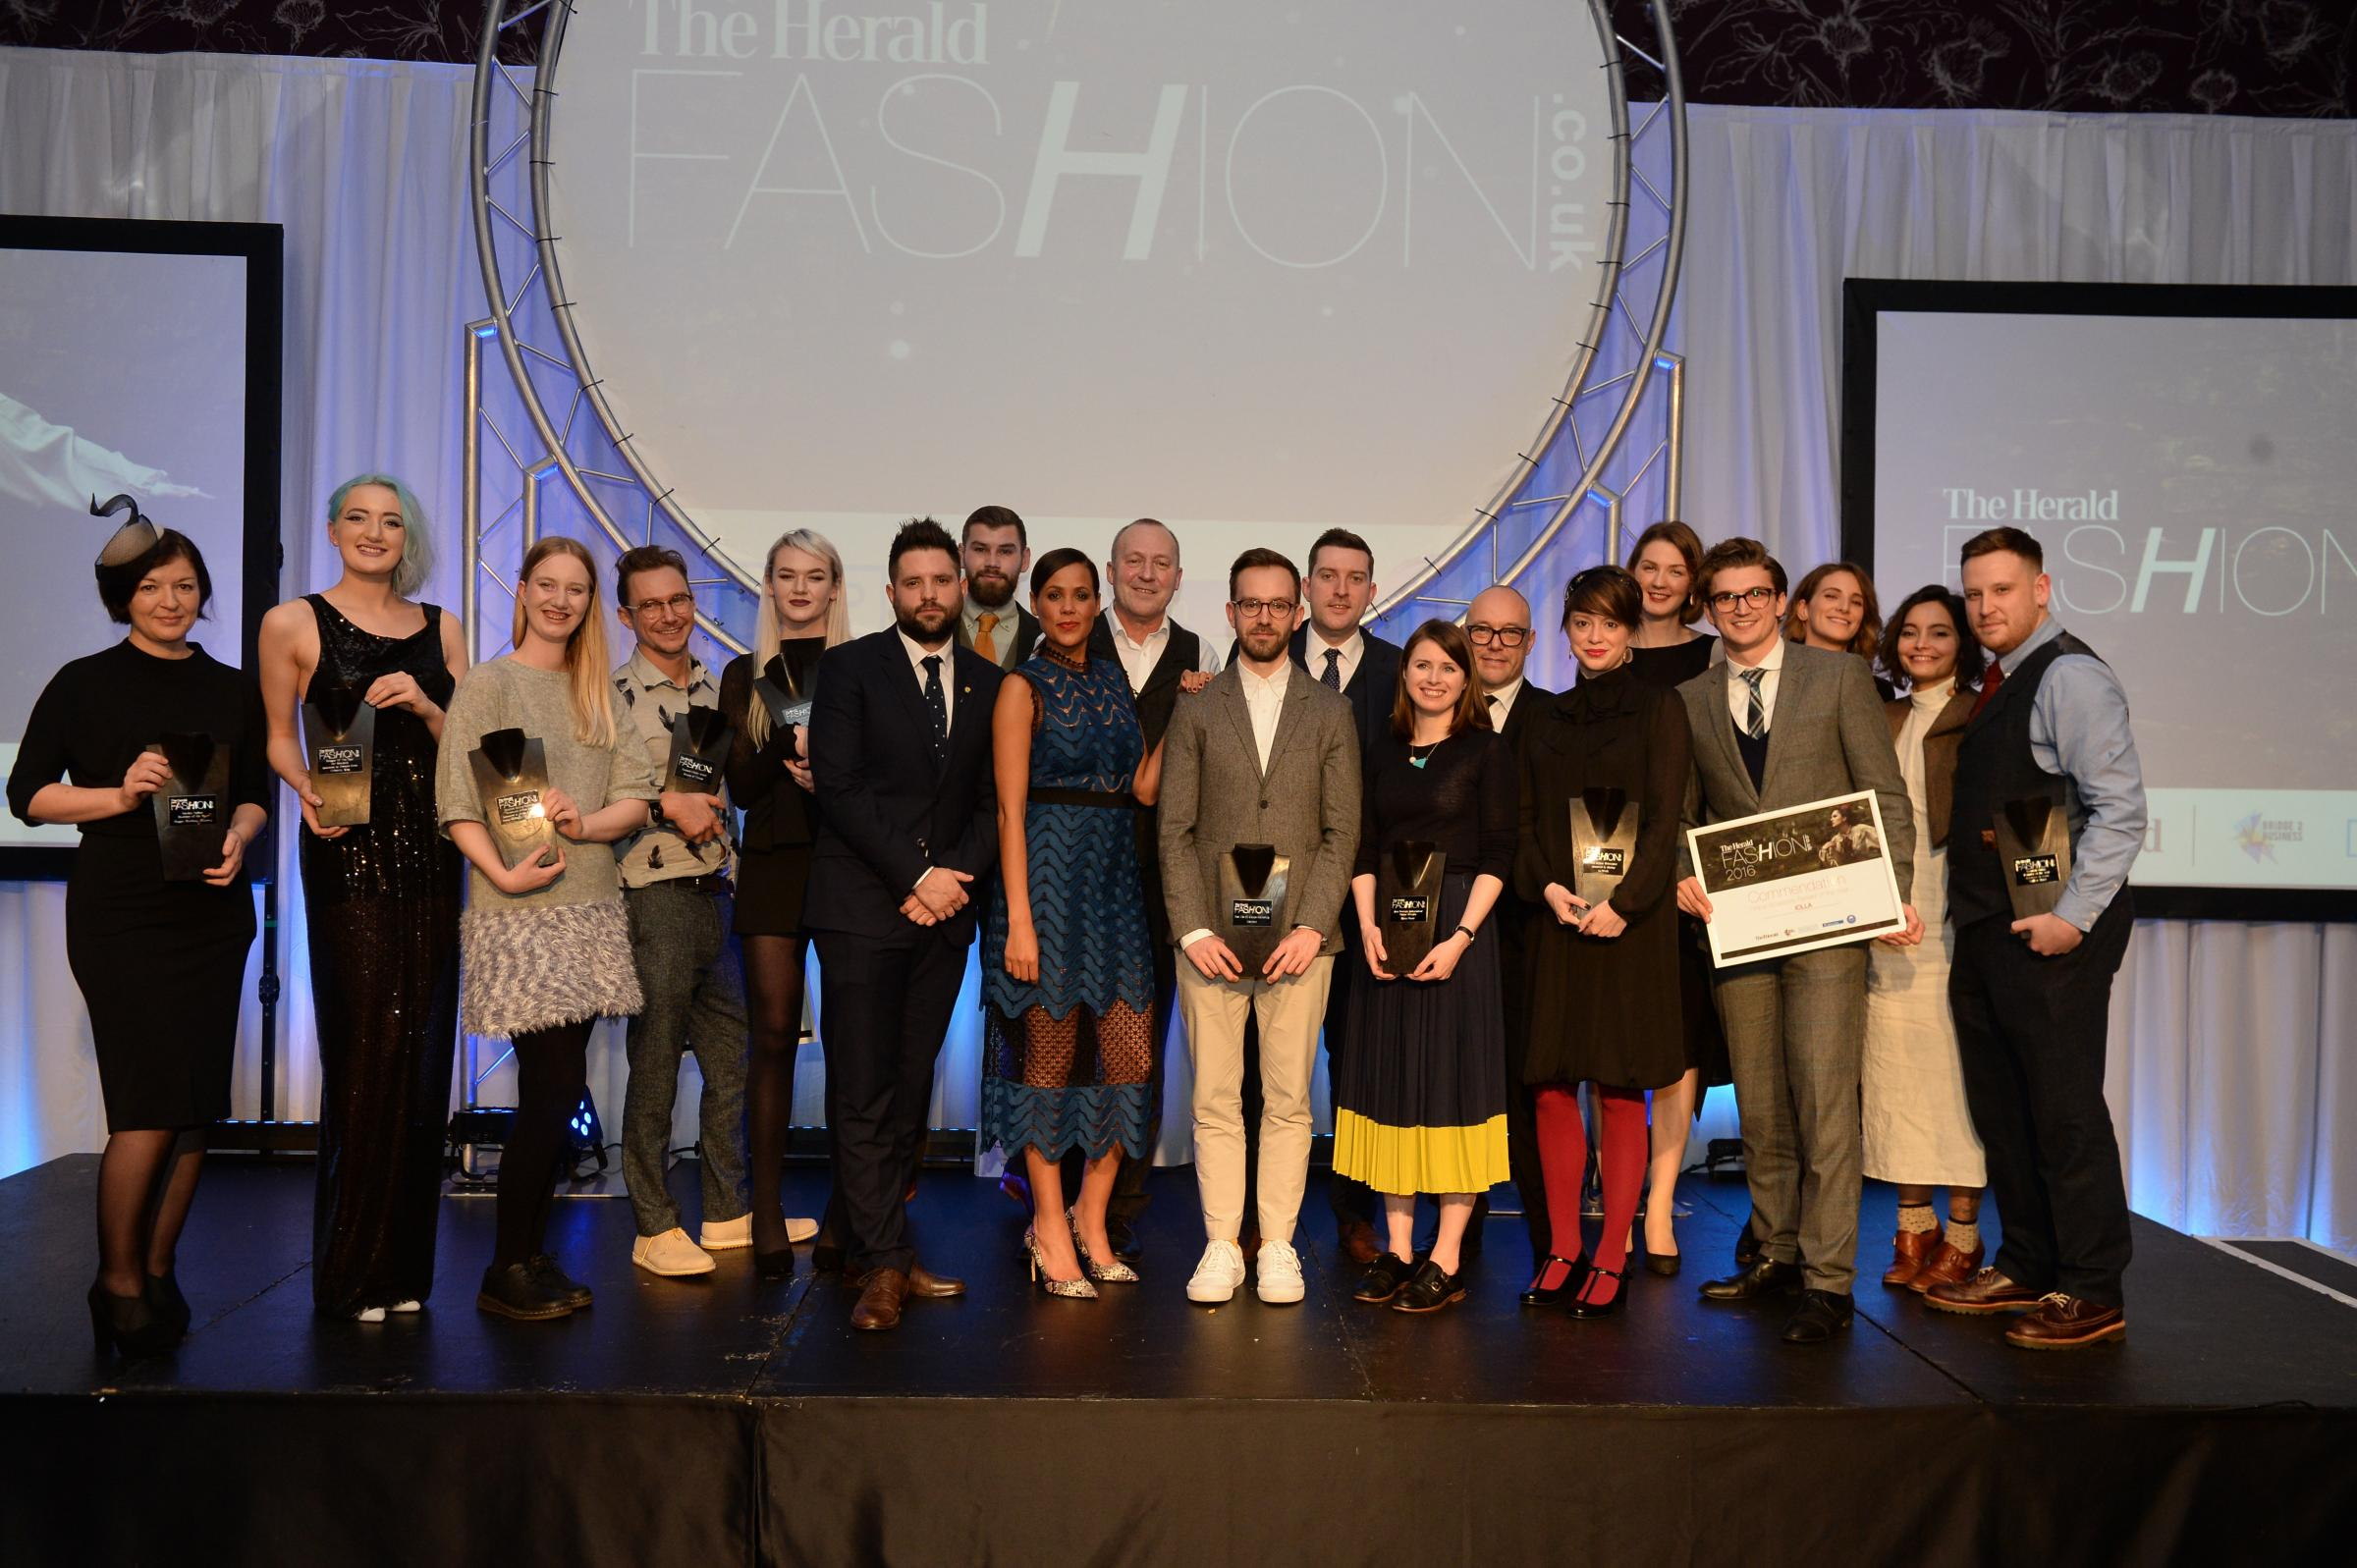 Award entries are open for those setting the trends in online fashion